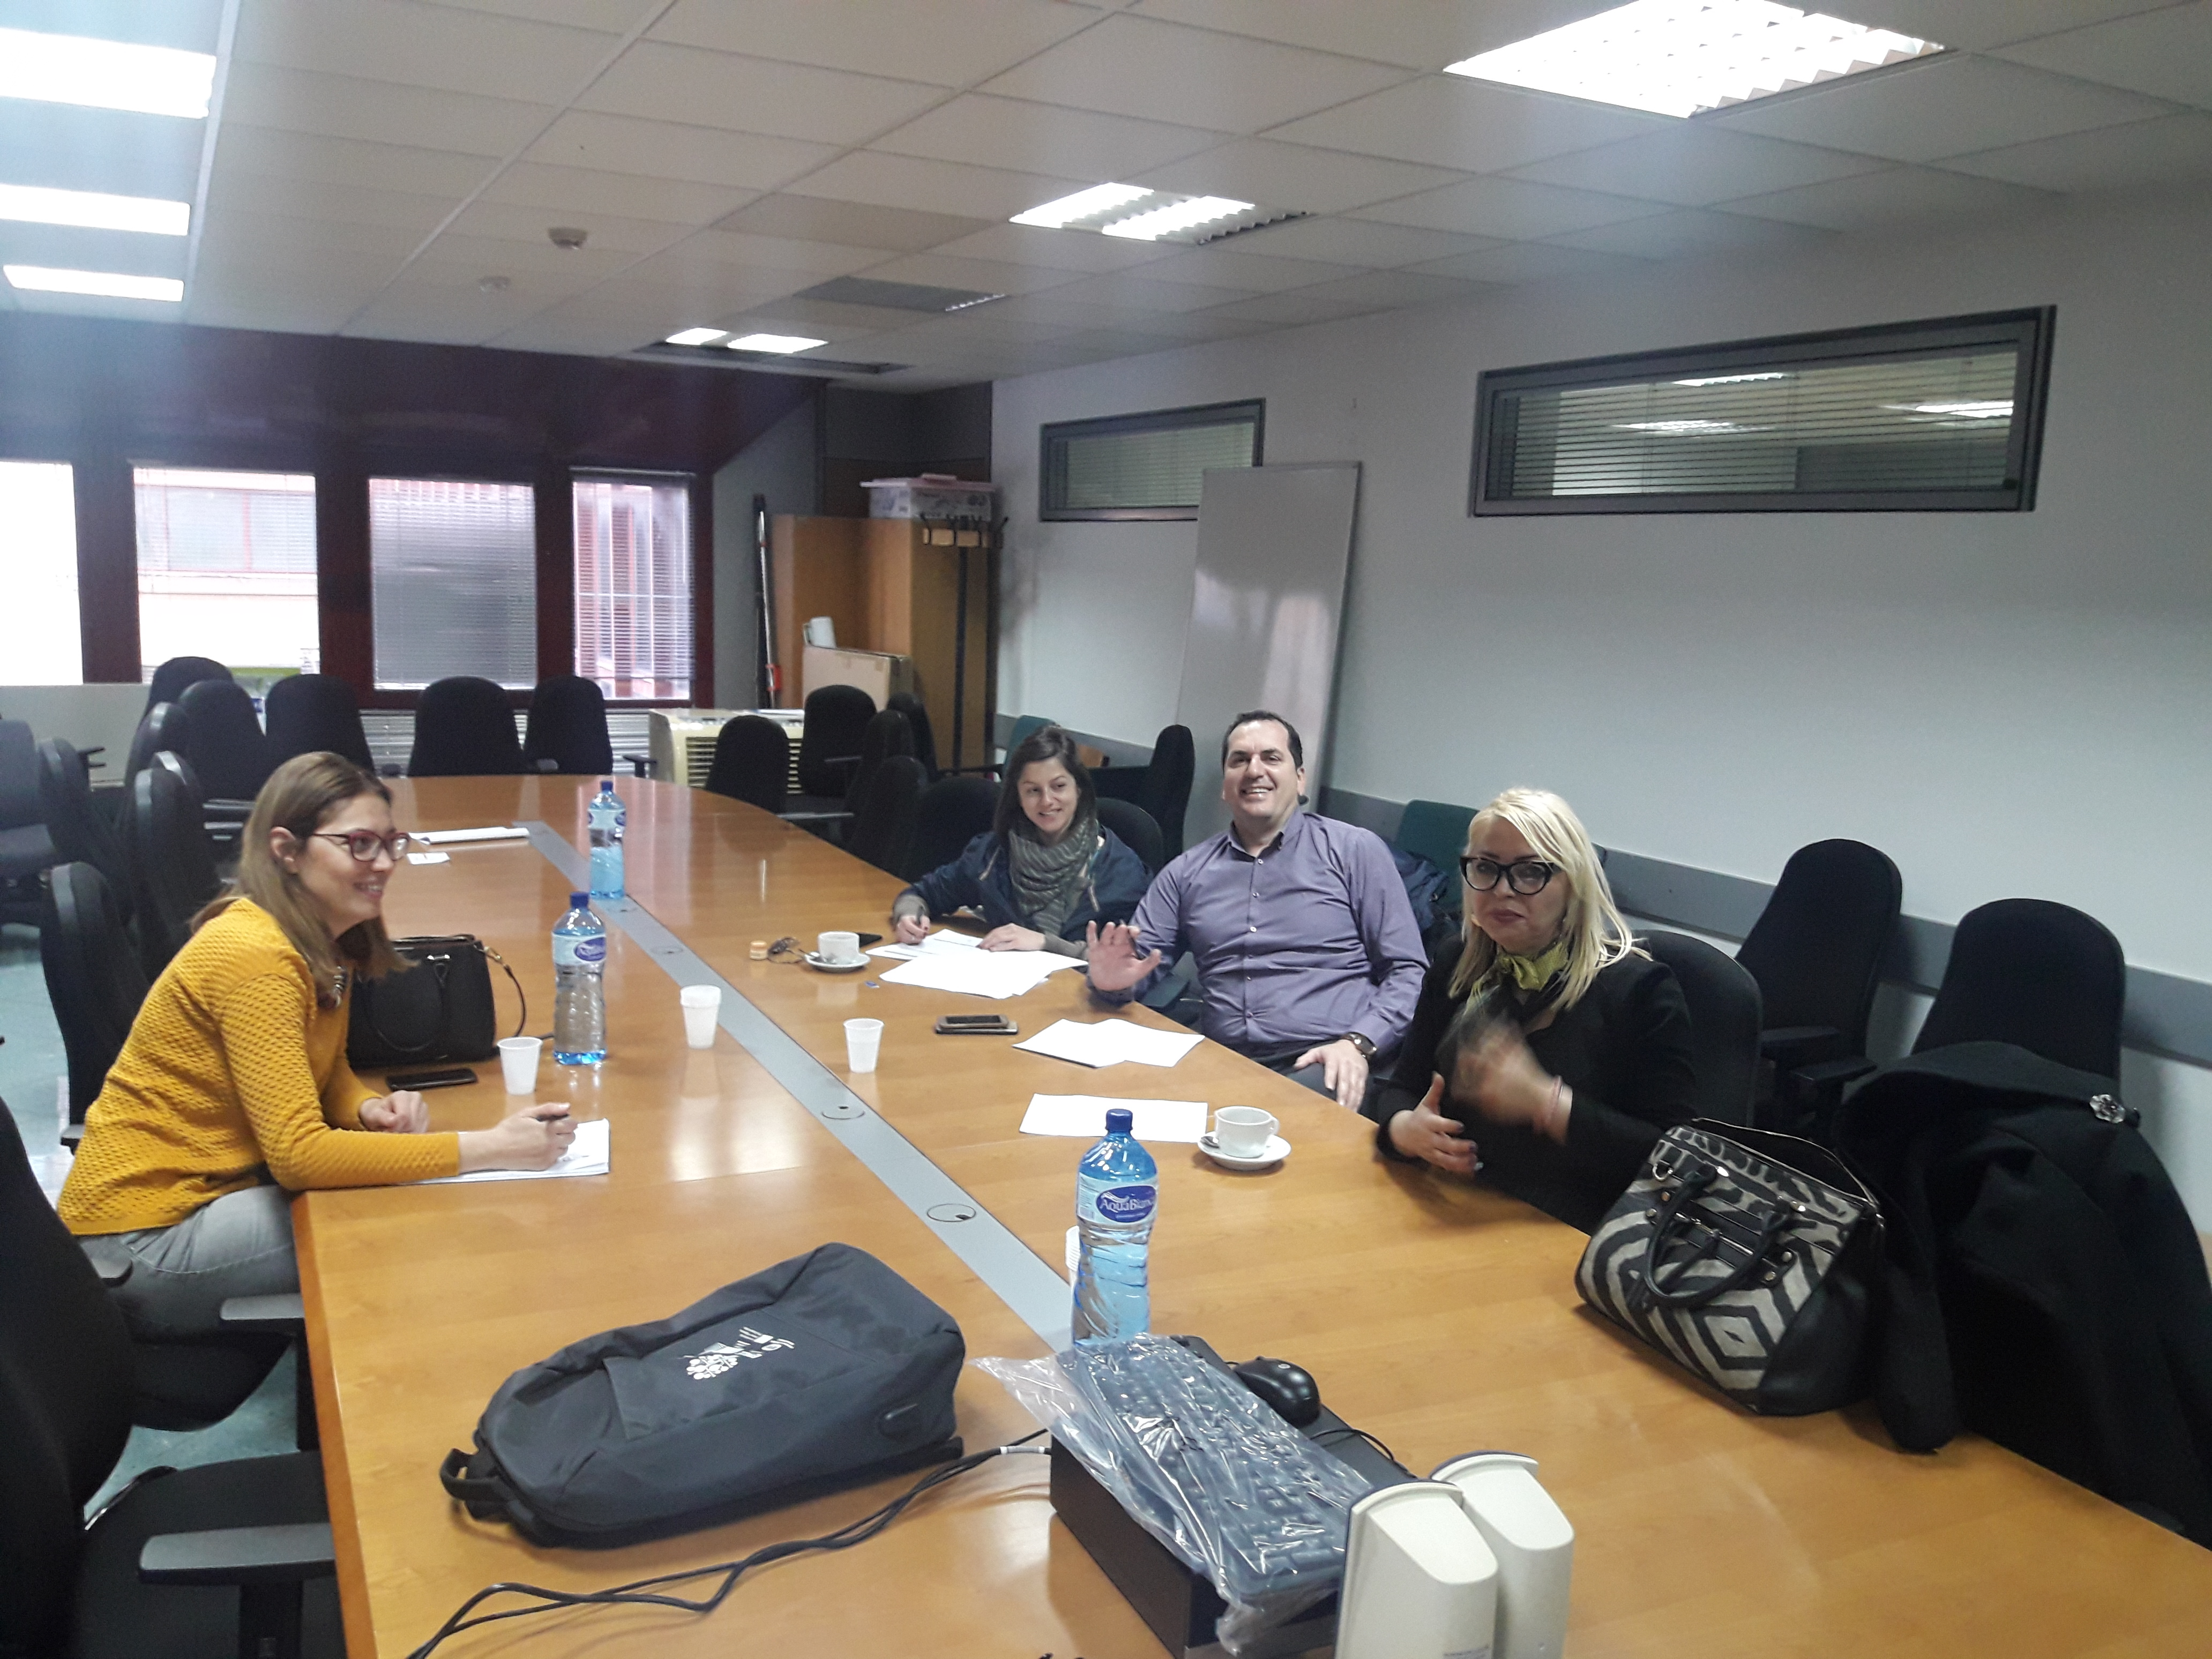 The Final Working Group Meeting For The Hotel And Restaurant Technician Qualification Standard In Podgorica